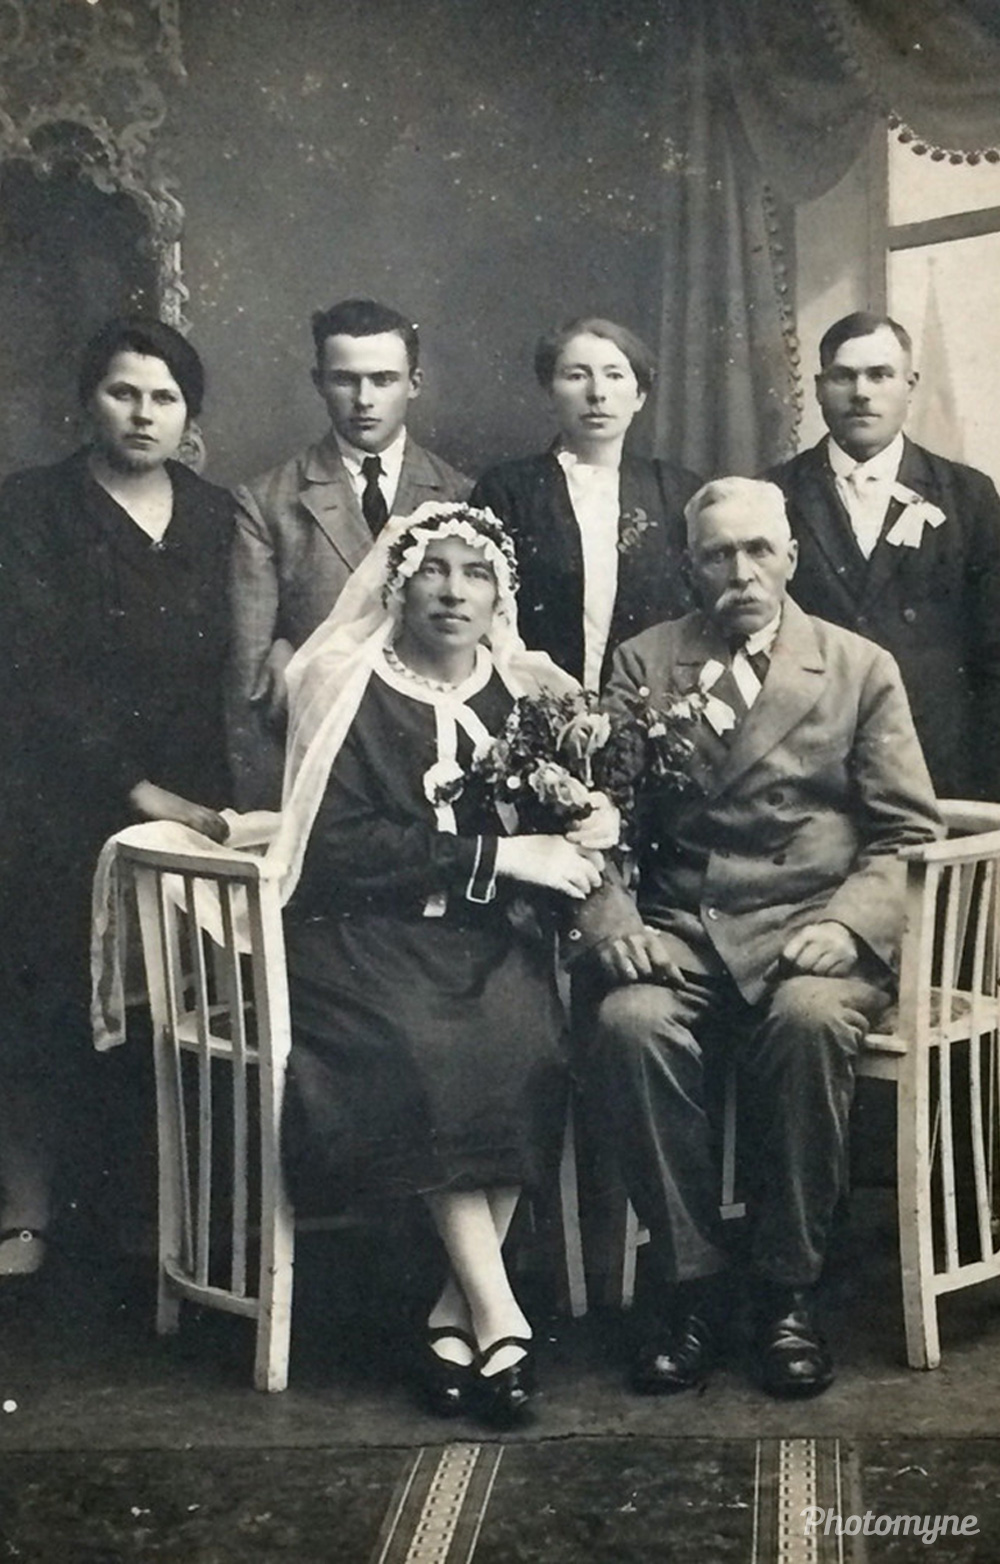 Beier - Leier?? Who know's this family?? Pruissen between 1900 and 1950?